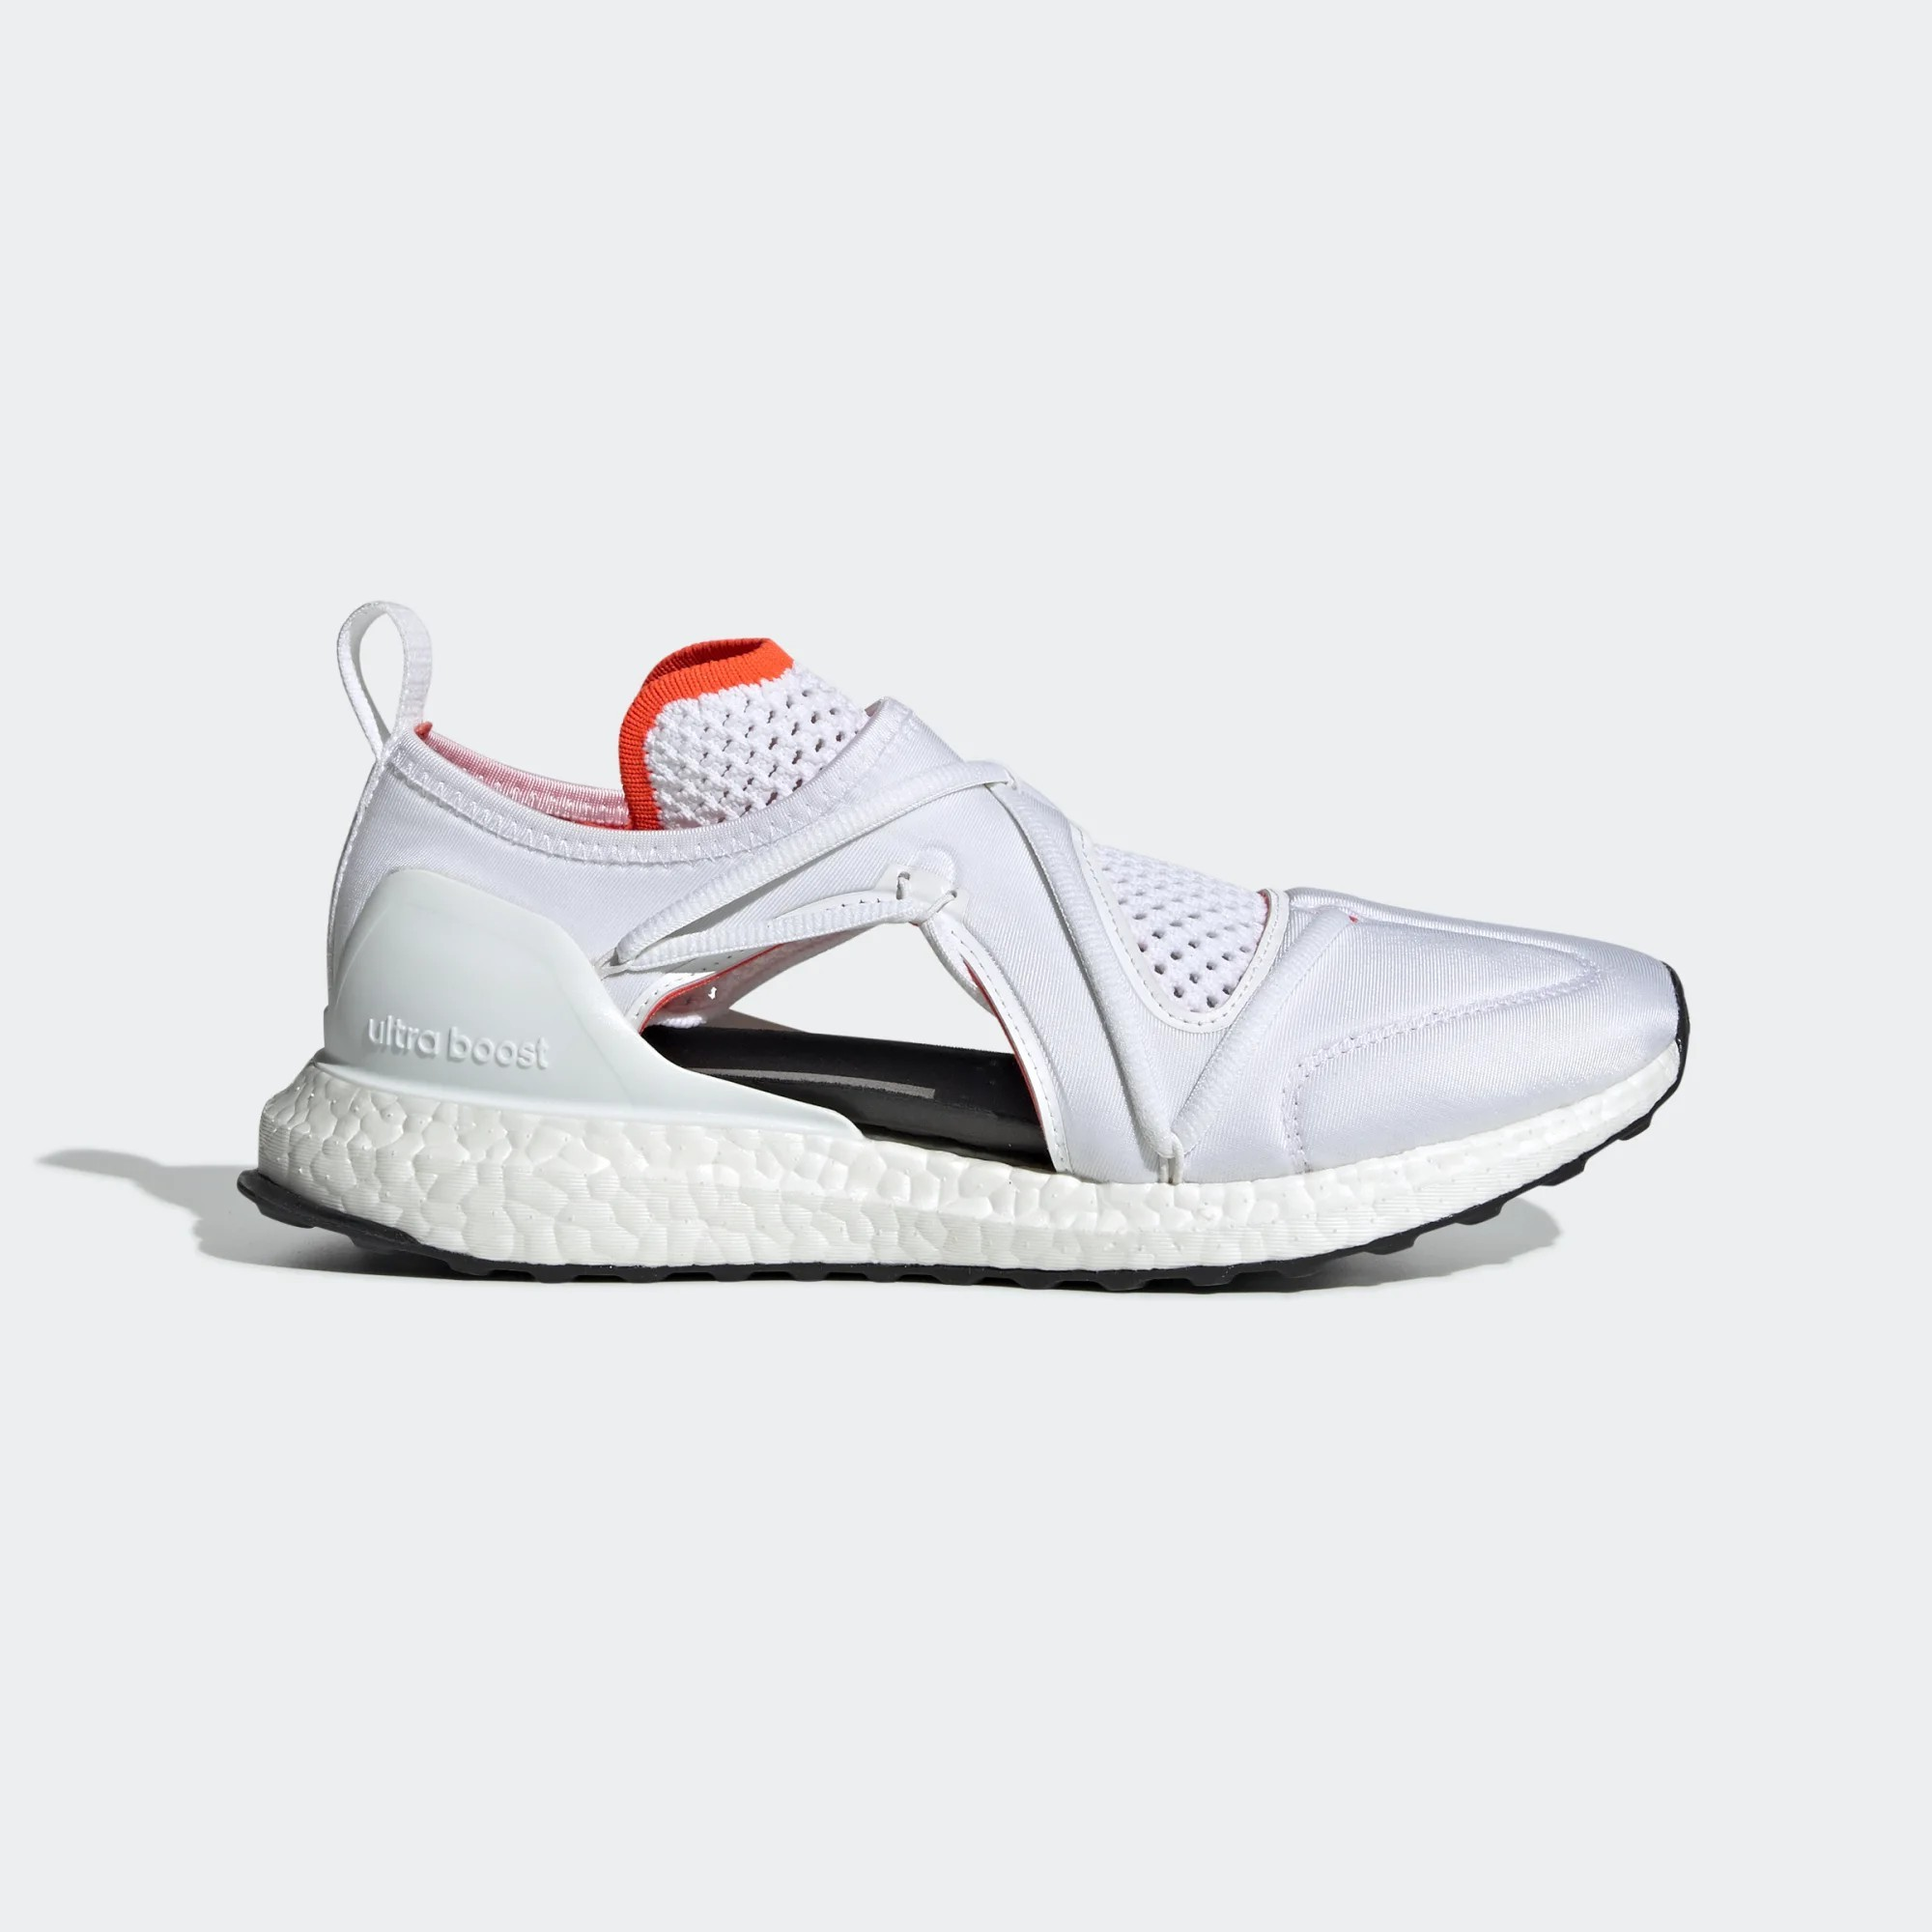 adidas x Stella McCartney Ultra Boost T White D97722